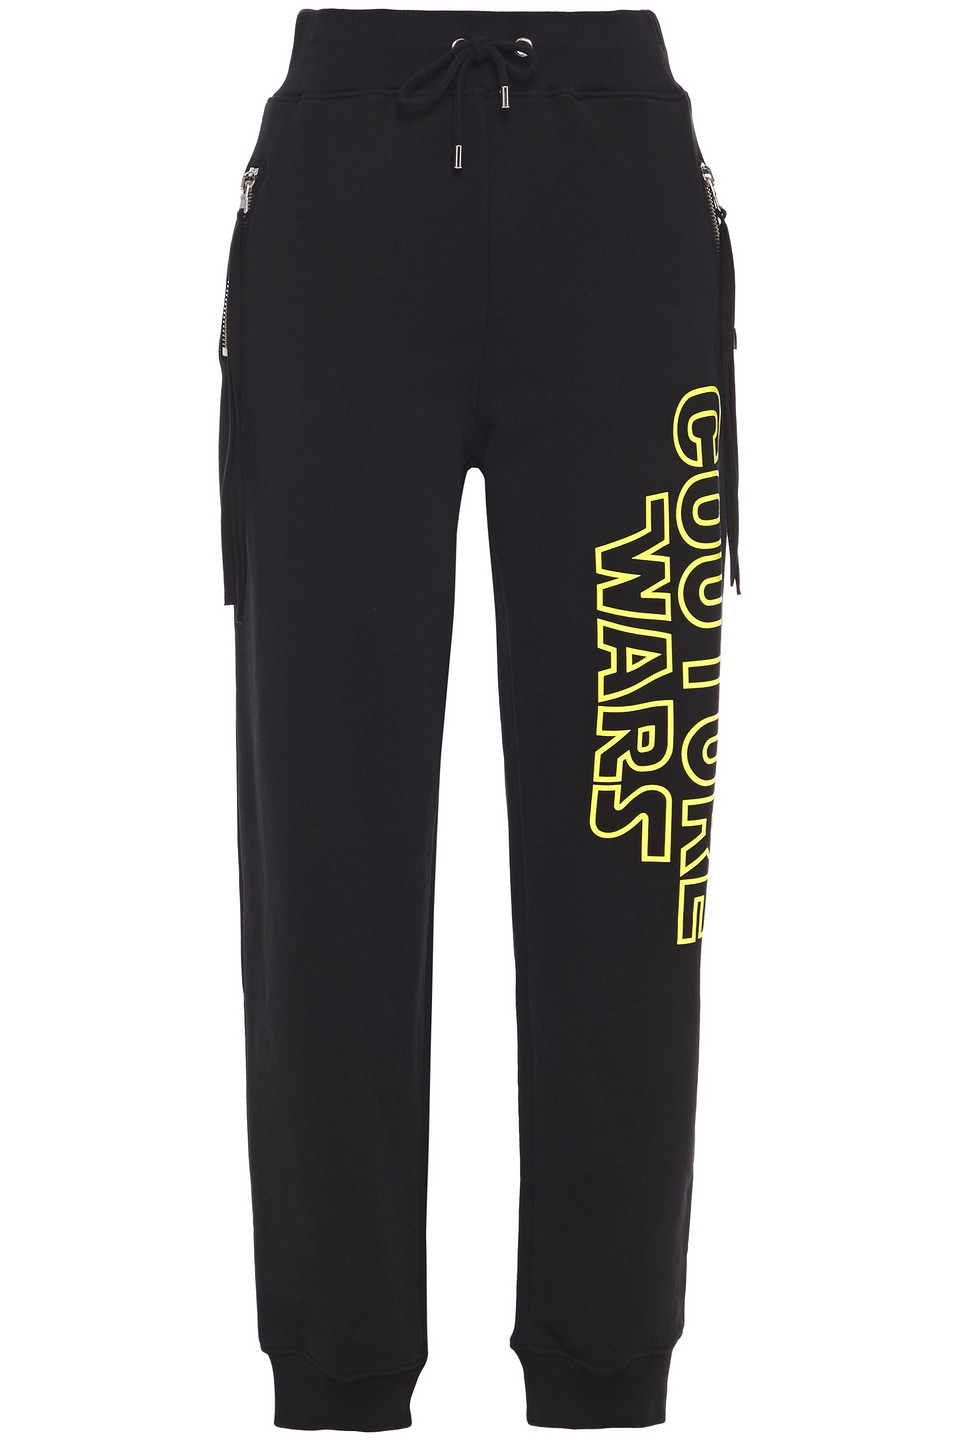 MOSCHINO | Moschino Woman Printed French Cotton-terry Track Pants Black | Clouty